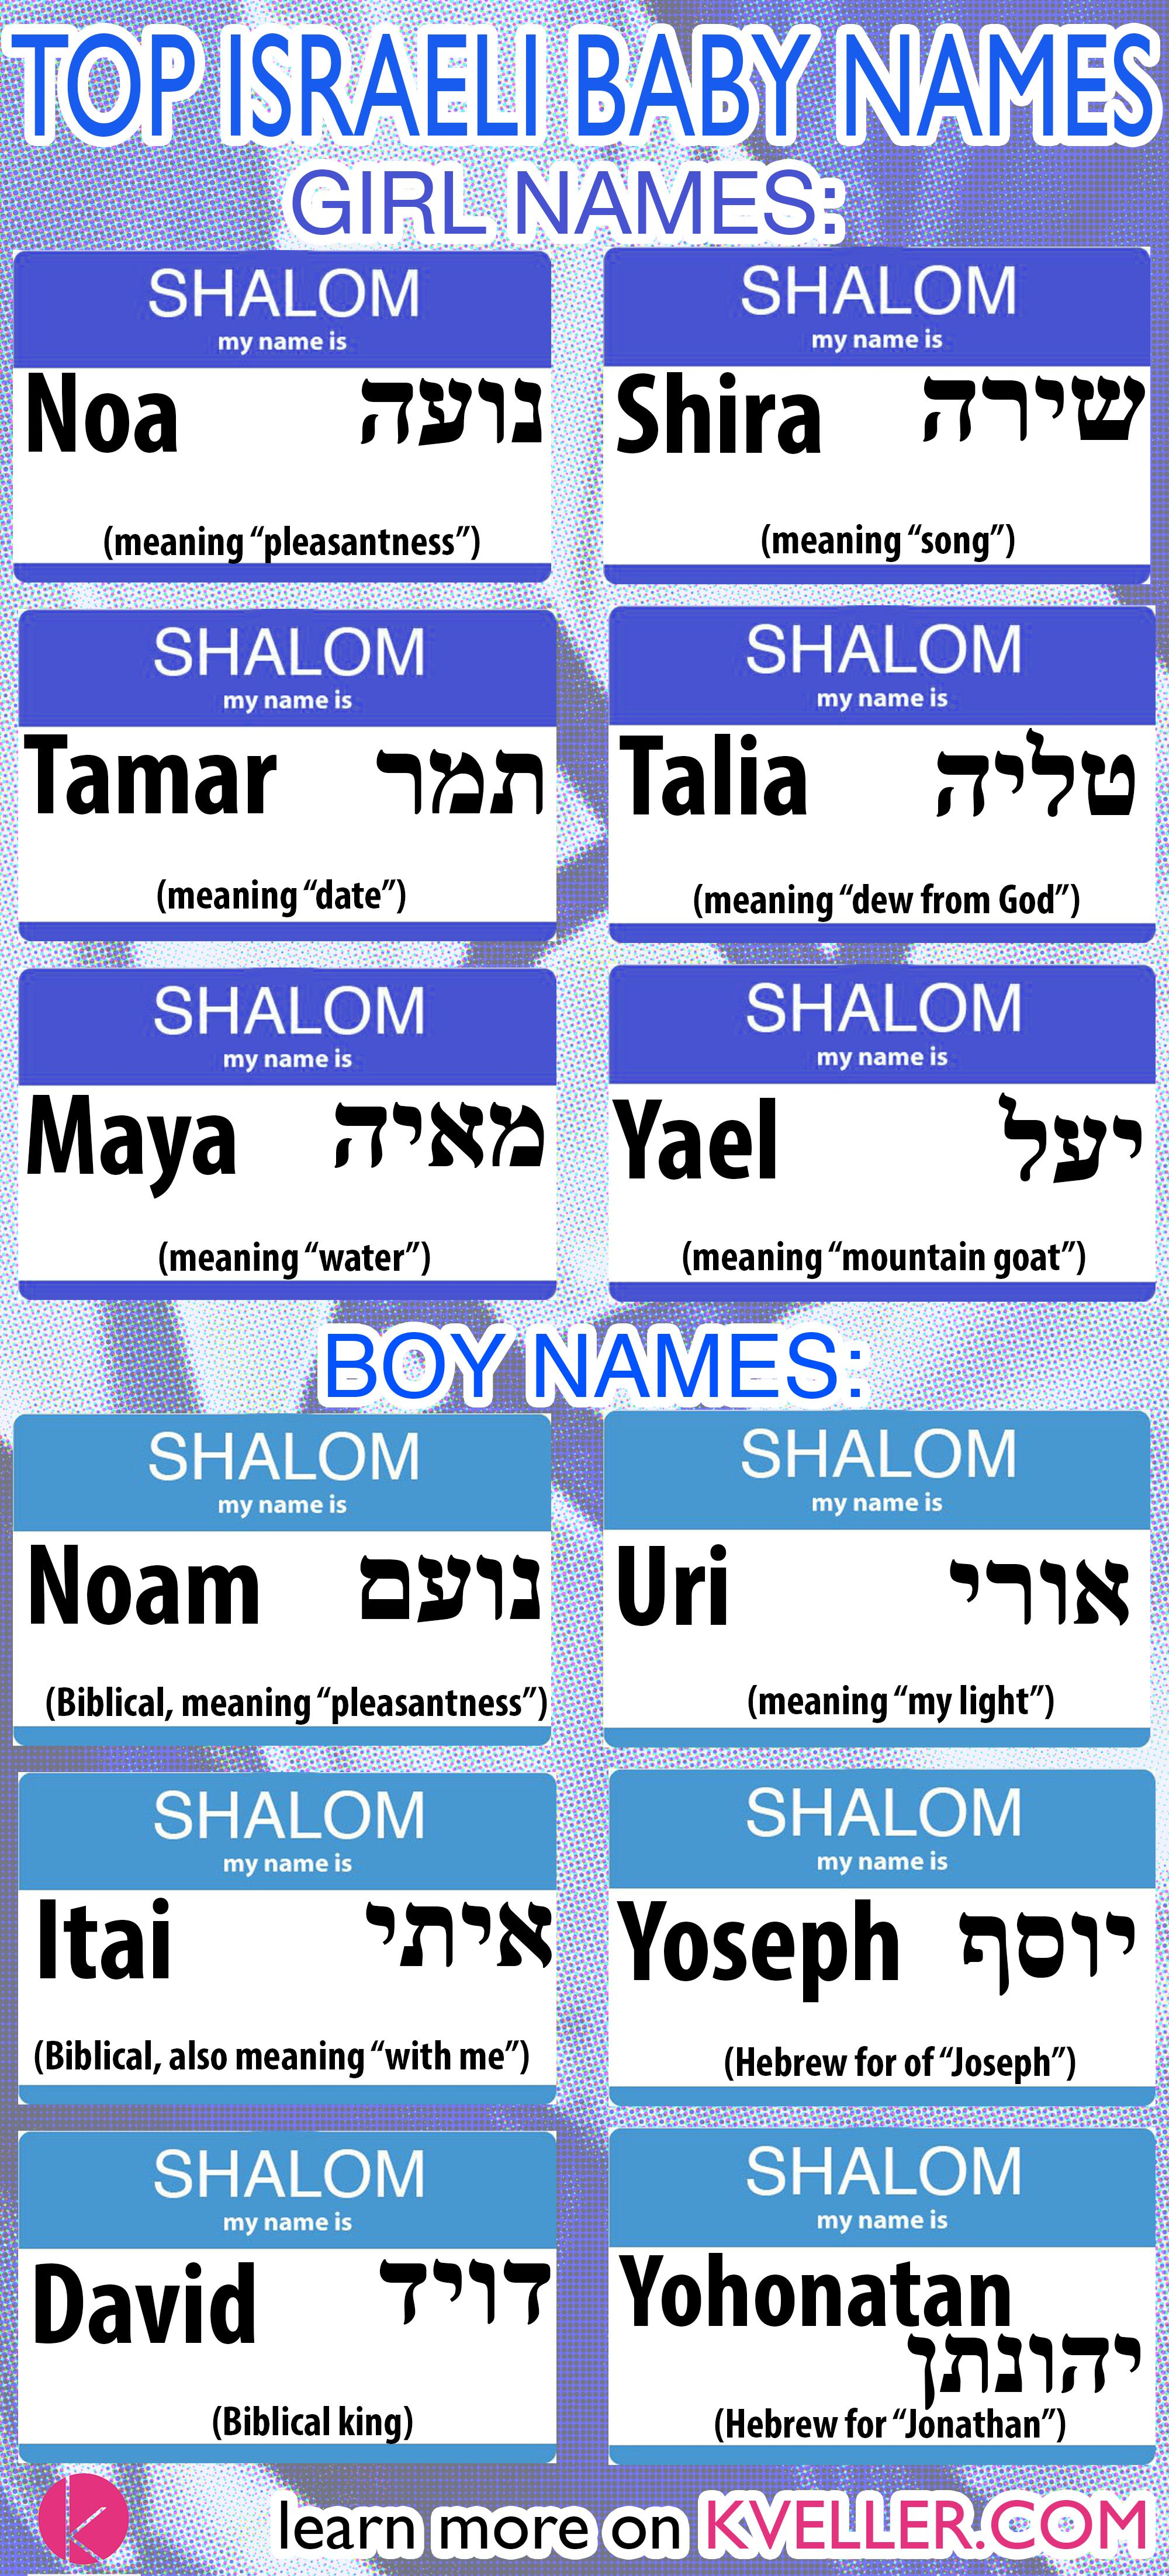 Dating an israeli jewish man names. Dating an israeli jewish man names.